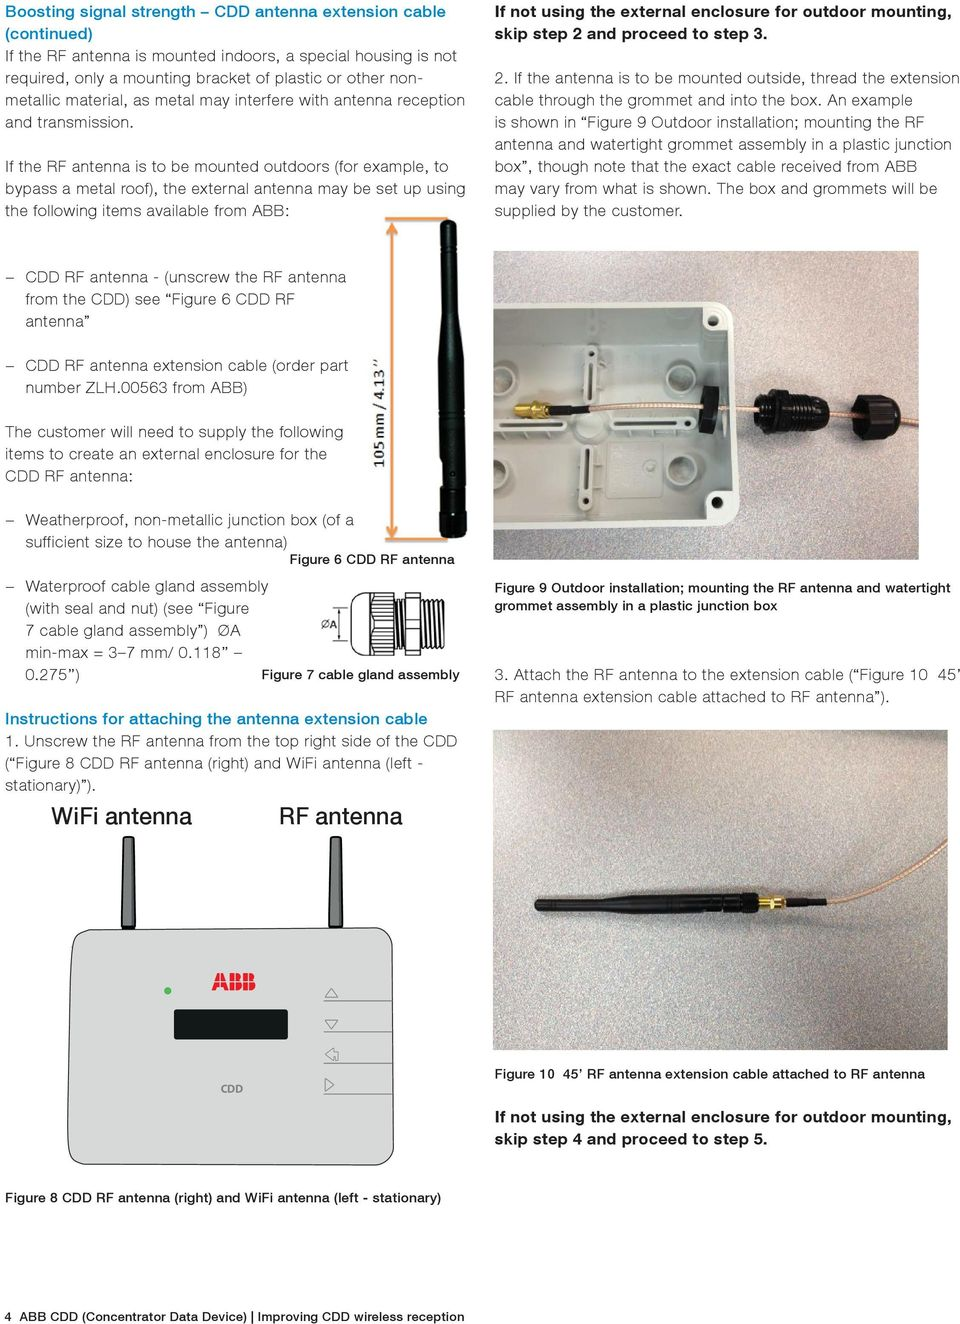 If the RF antenna is to be mounted outdoors (for example, to bypass a metal roof), the external antenna may be set up using the following items available from ABB: If not using the external enclosure